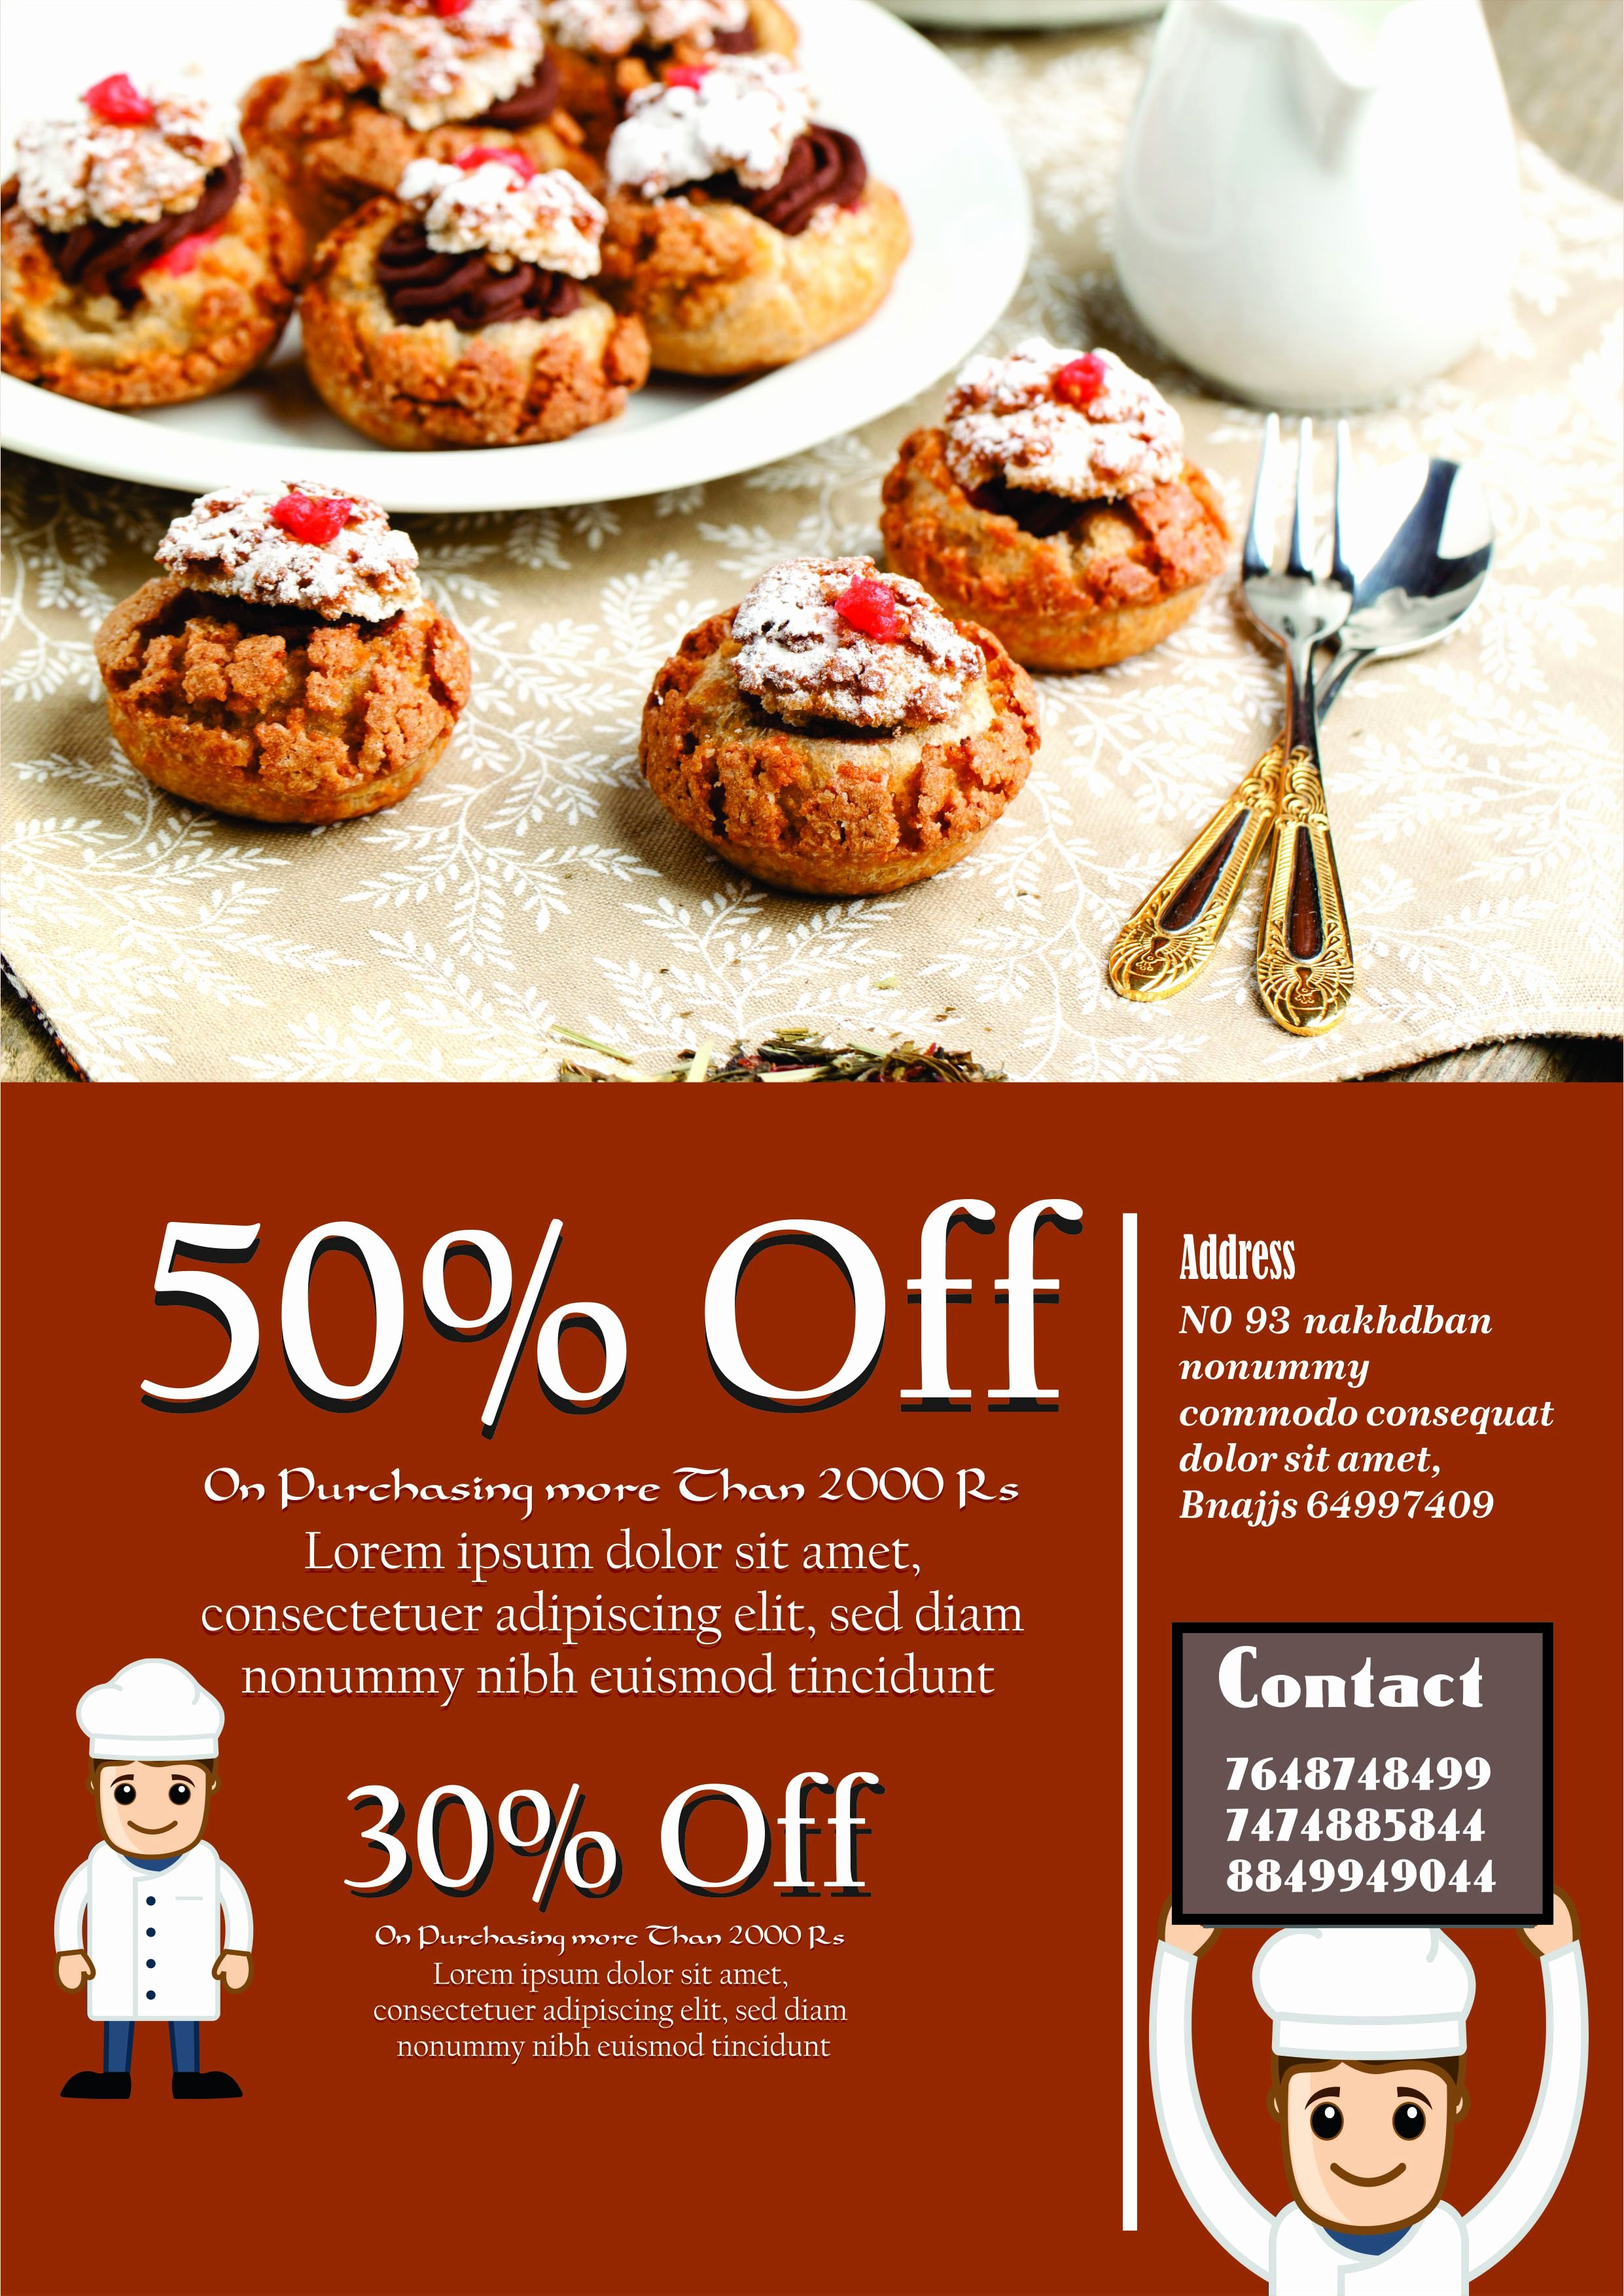 Bake Sale Flyer Templates Free Luxury Engaging Free Bake Sale Flyer Templates for Fundraising